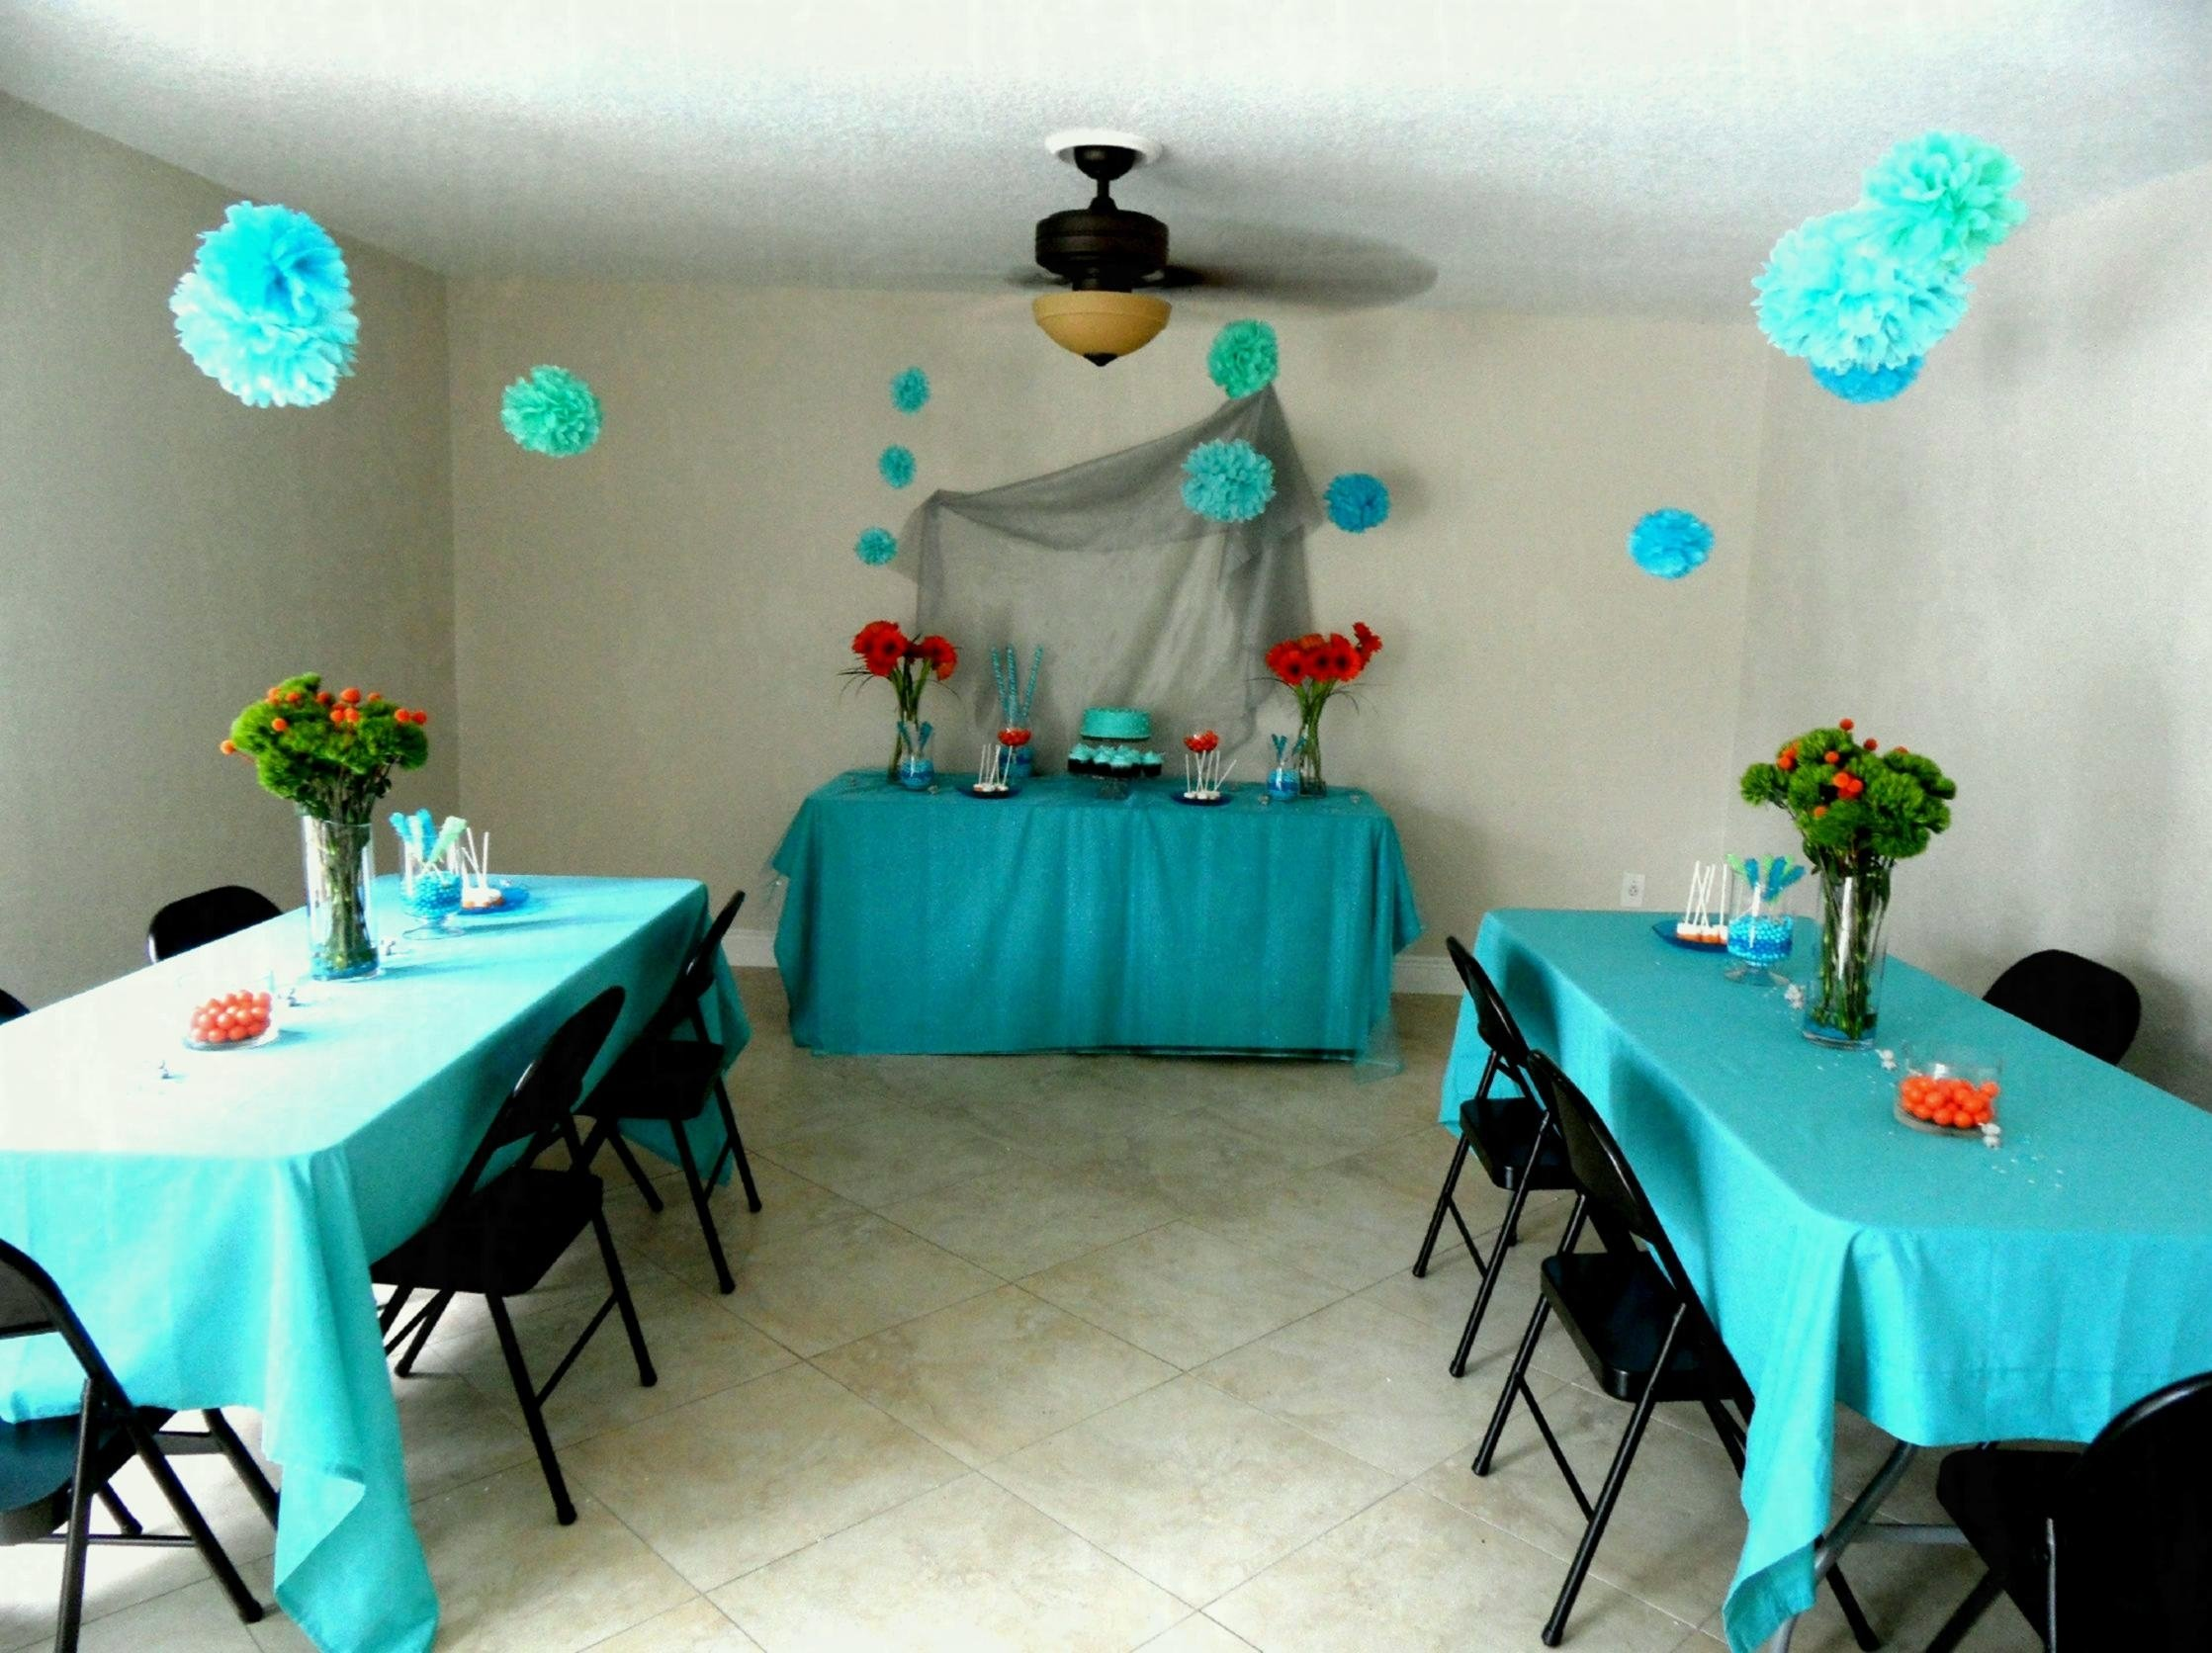 10 Unique Cute Baby Shower Ideas For A Boy ideas baby boy shower decorations delightful design themes for boys 1 2021